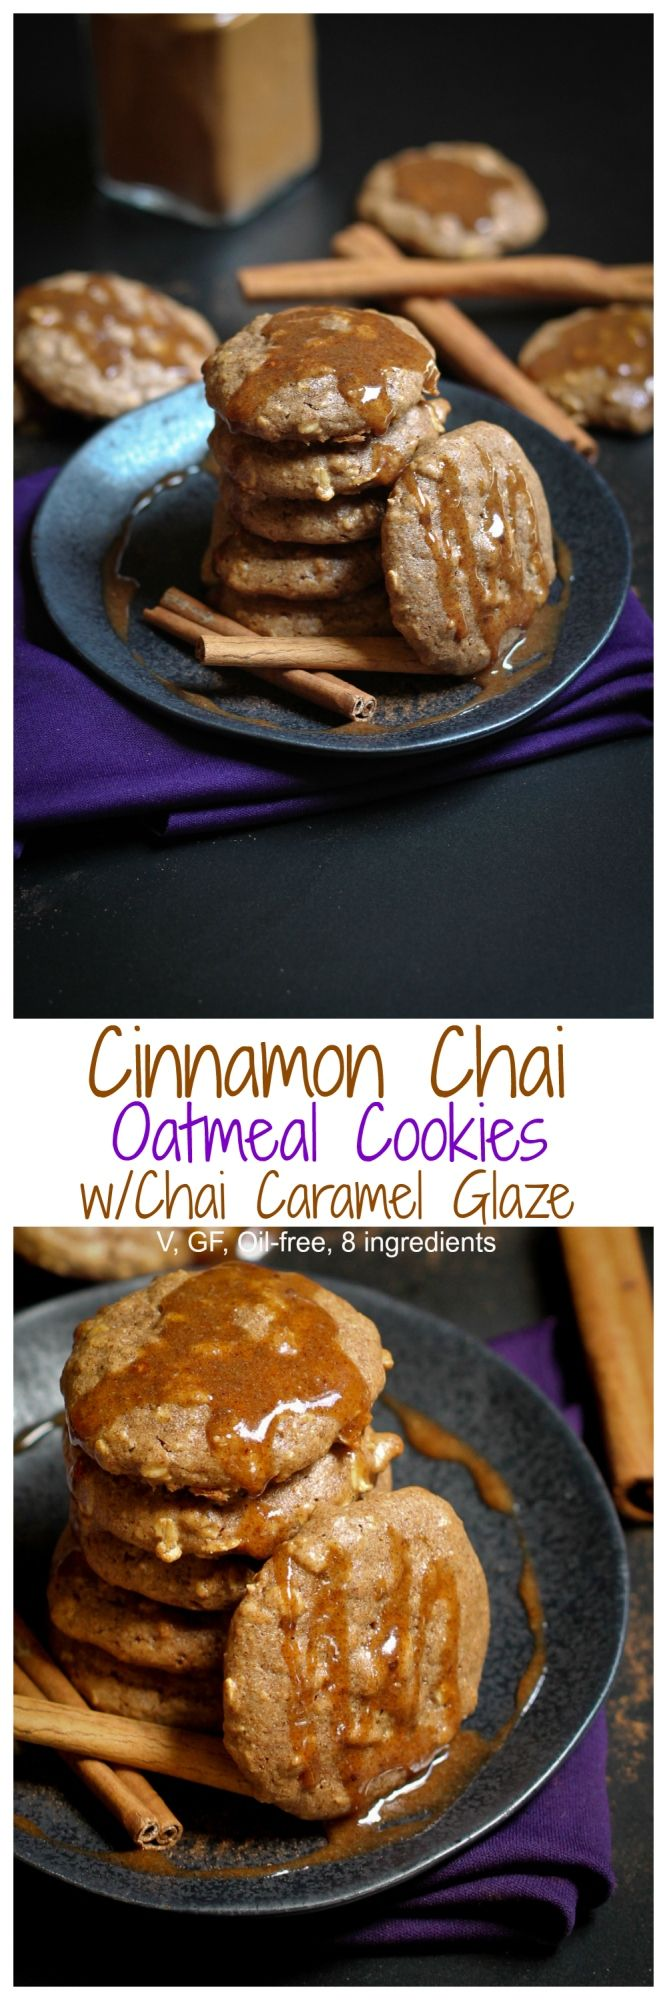 Cinnamon Chai Oatmeal Cookies with Chai Caramel Glaze. To die for and are vegan, gluten-free and oil-free and JUST 7 ingredients (+ tiny amount of water) for the entire recipe! | http://TheVegan8.com | #vegan #cookies #oatmeal #cinnamon #chai #glutenfree #oilfree #dairyfree